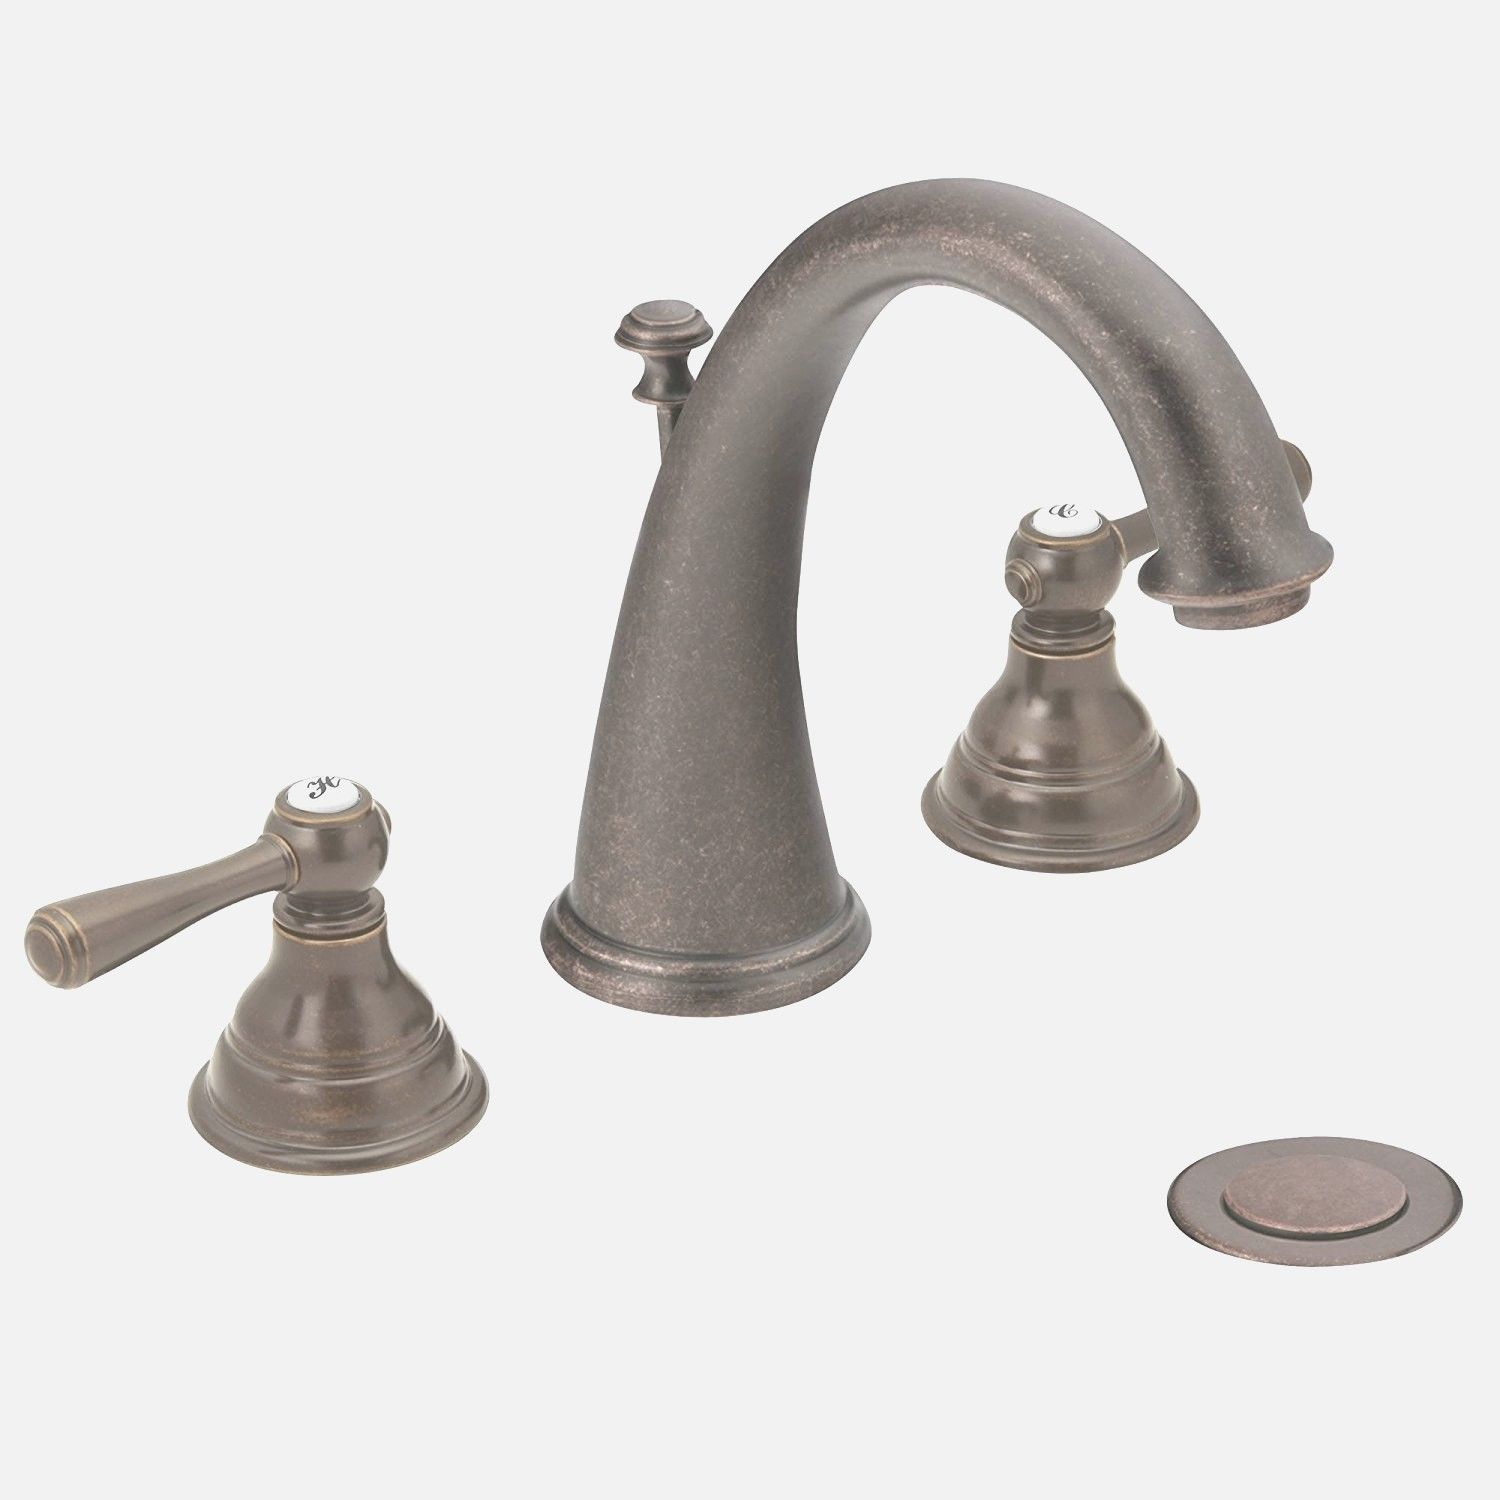 copper one faucets with standard american shower moen set roman touch faucet tub kohler kitchen diverter bathtub